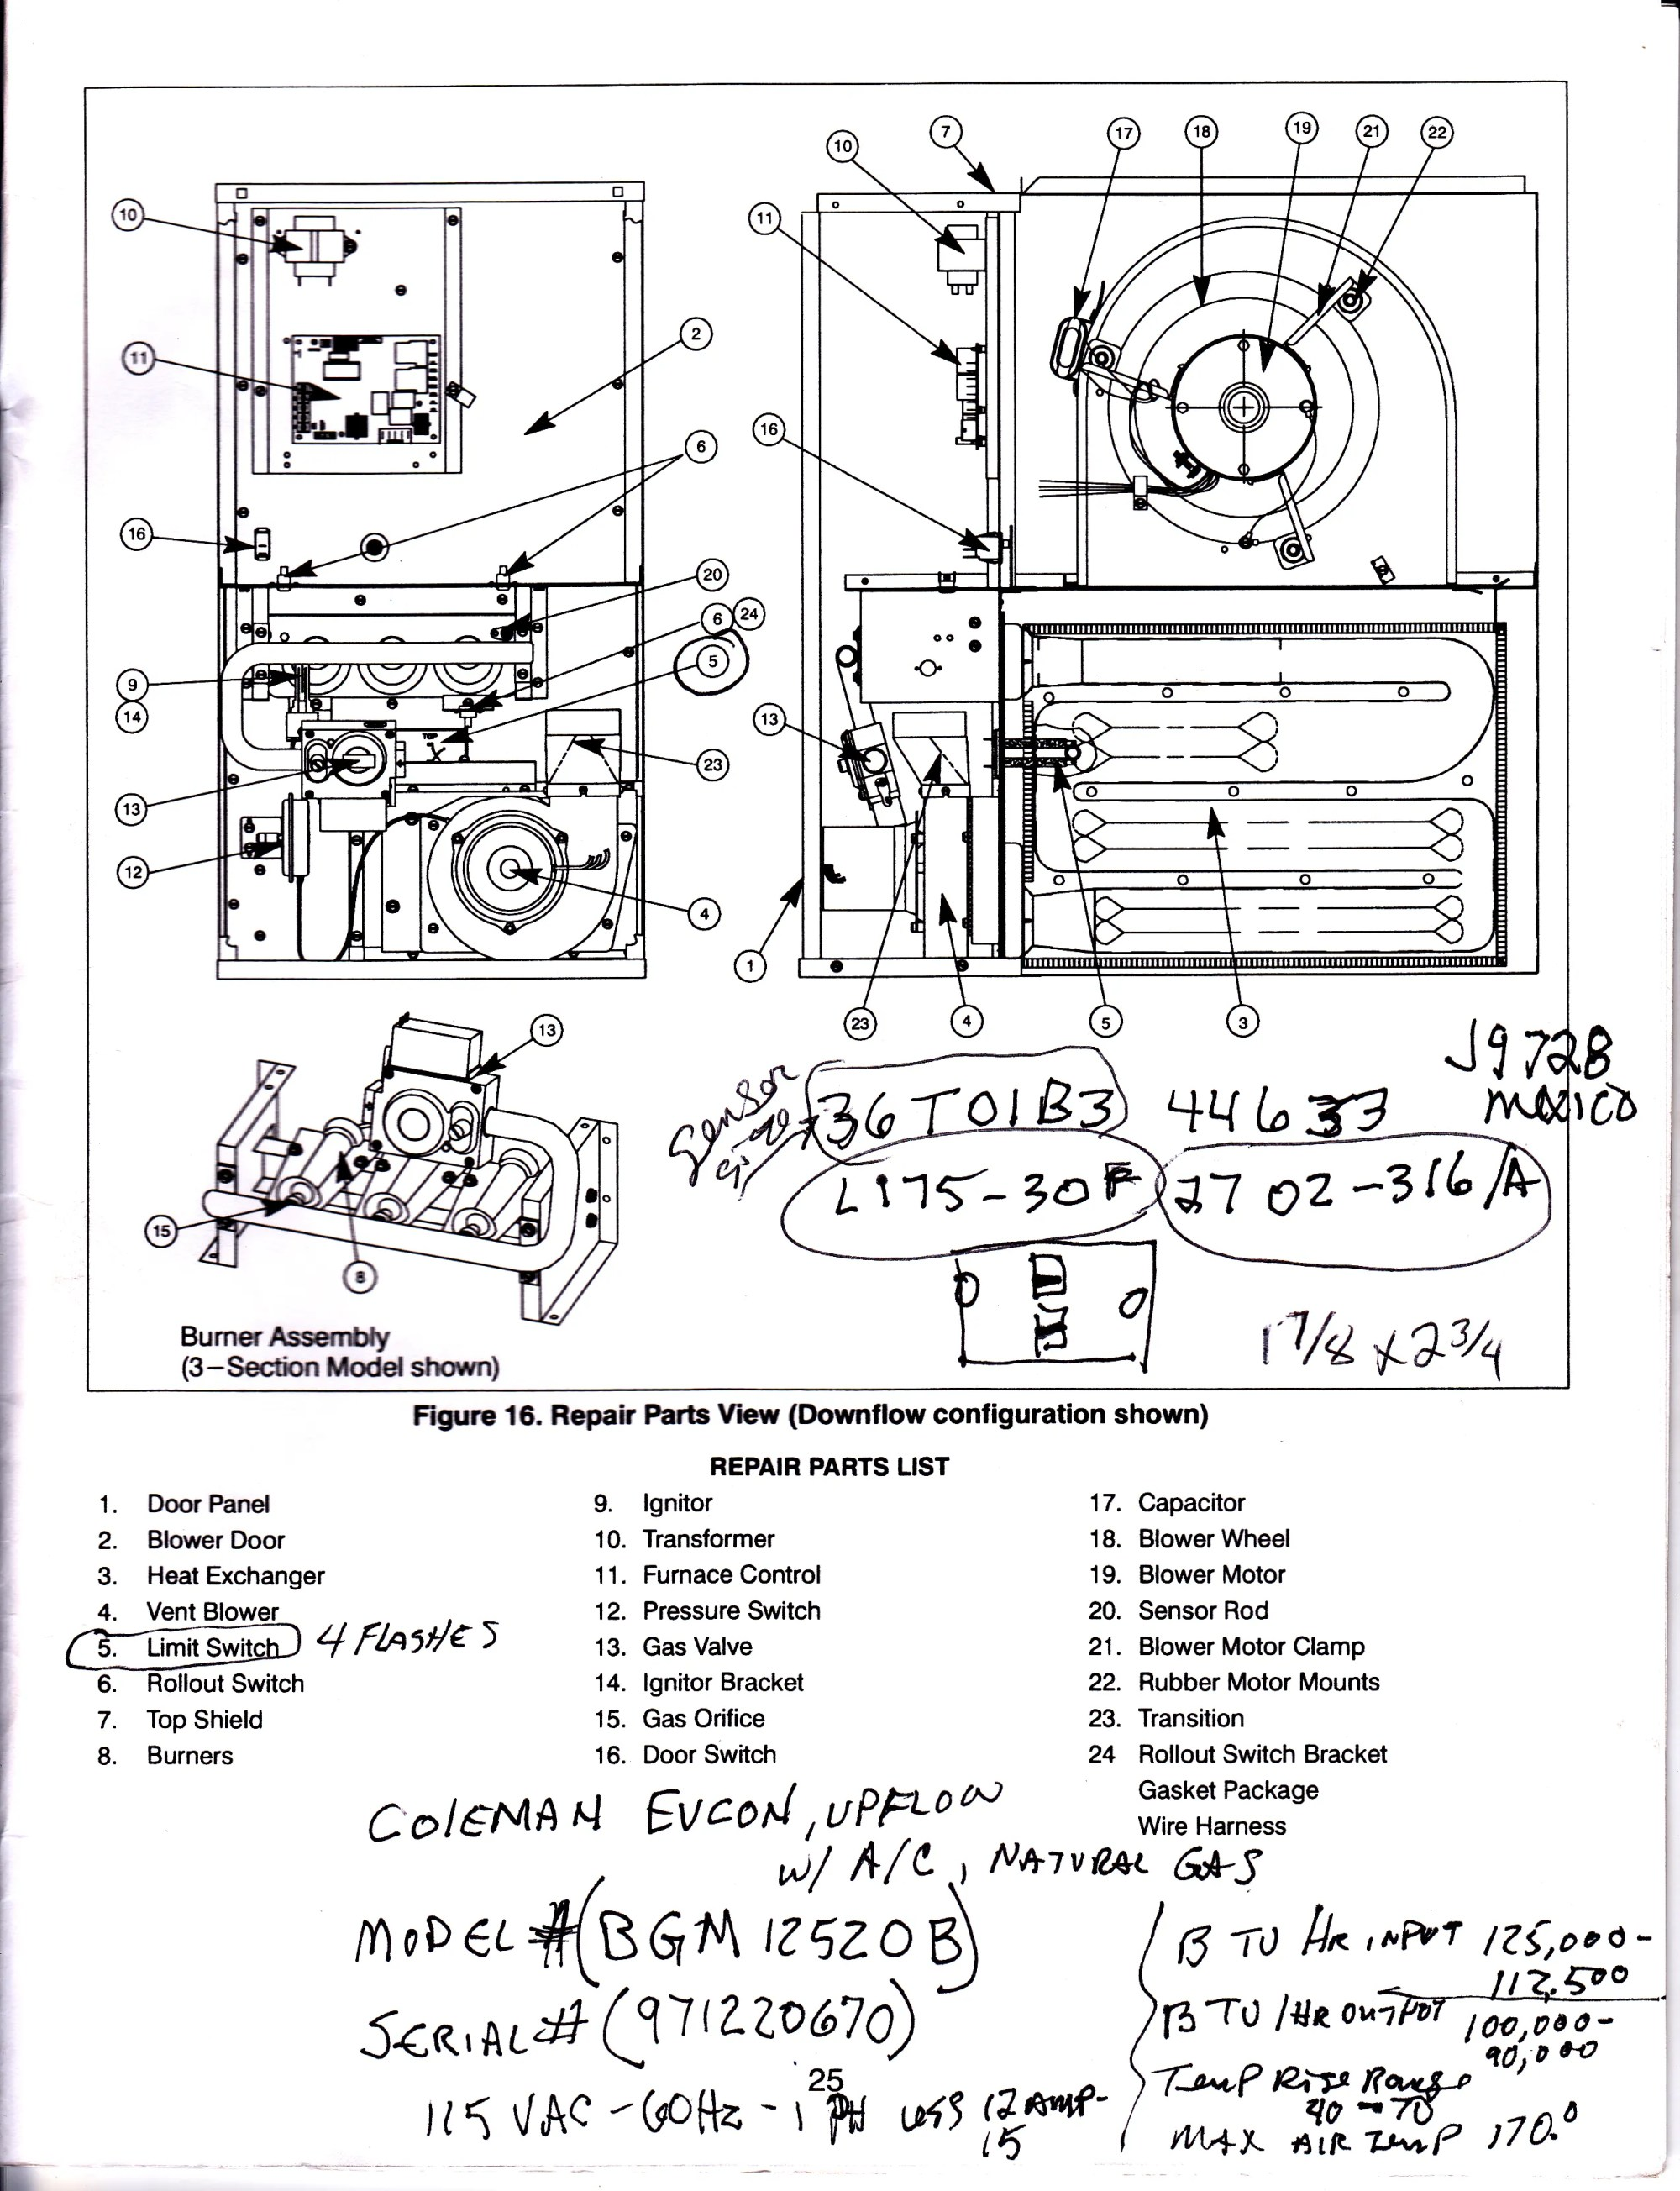 hight resolution of coleman 7975 furnace wiring diagram coleman free engine coleman eb15b electric furnace diagram coleman electric furnace